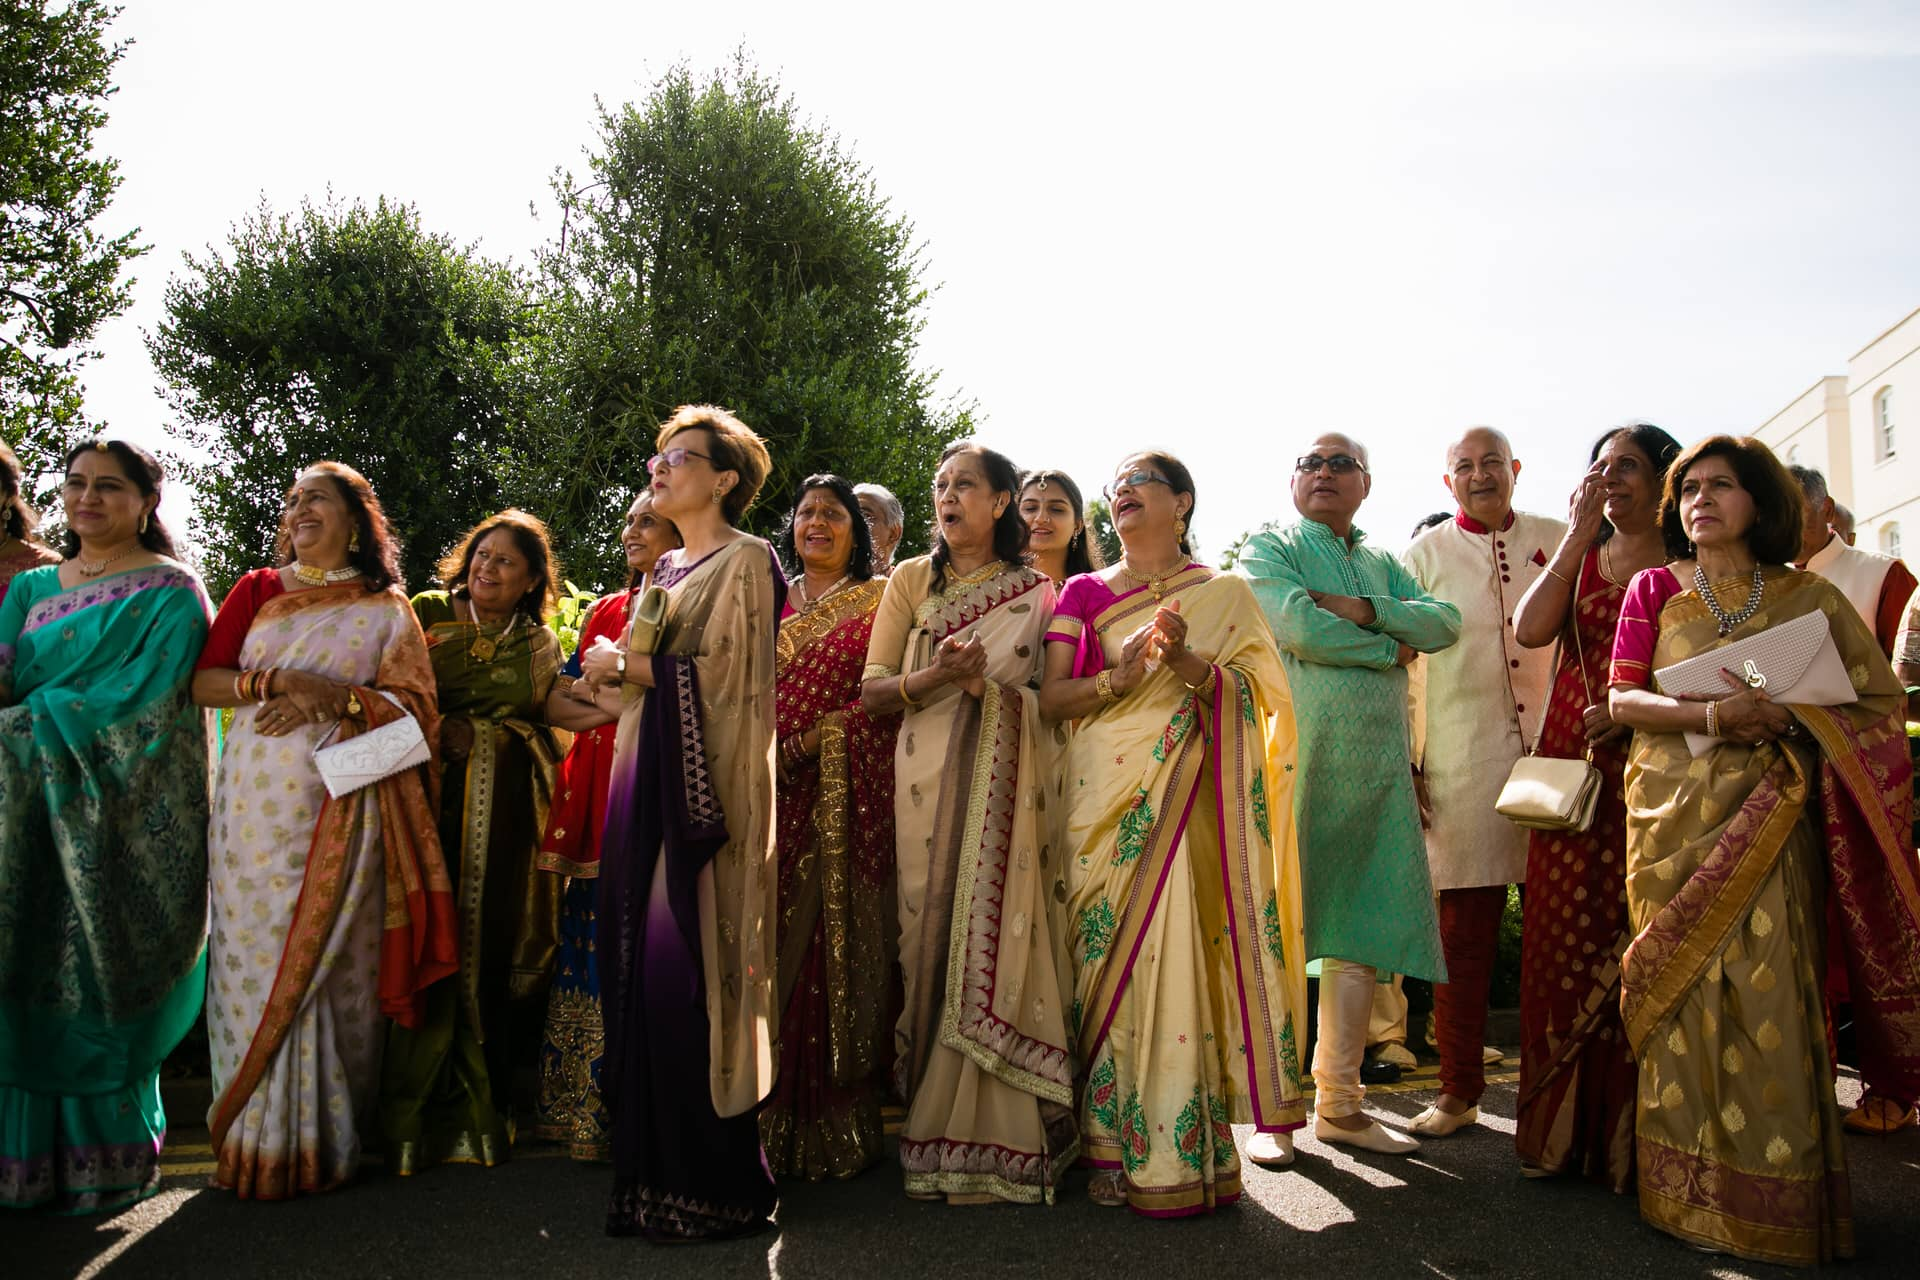 Asian wedding guests arriving for wedding ceremony